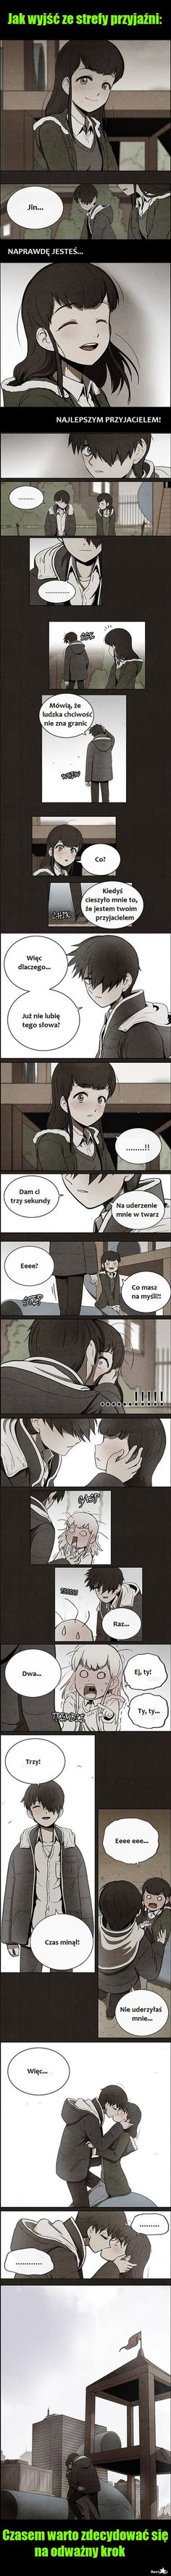 Anime romantic, but real life creepy Cute Couple Comics, Couples Comics, Comics Love, Cute Comics, Me Anime, I Love Anime, Manga Anime, Calin Couple, Httyd